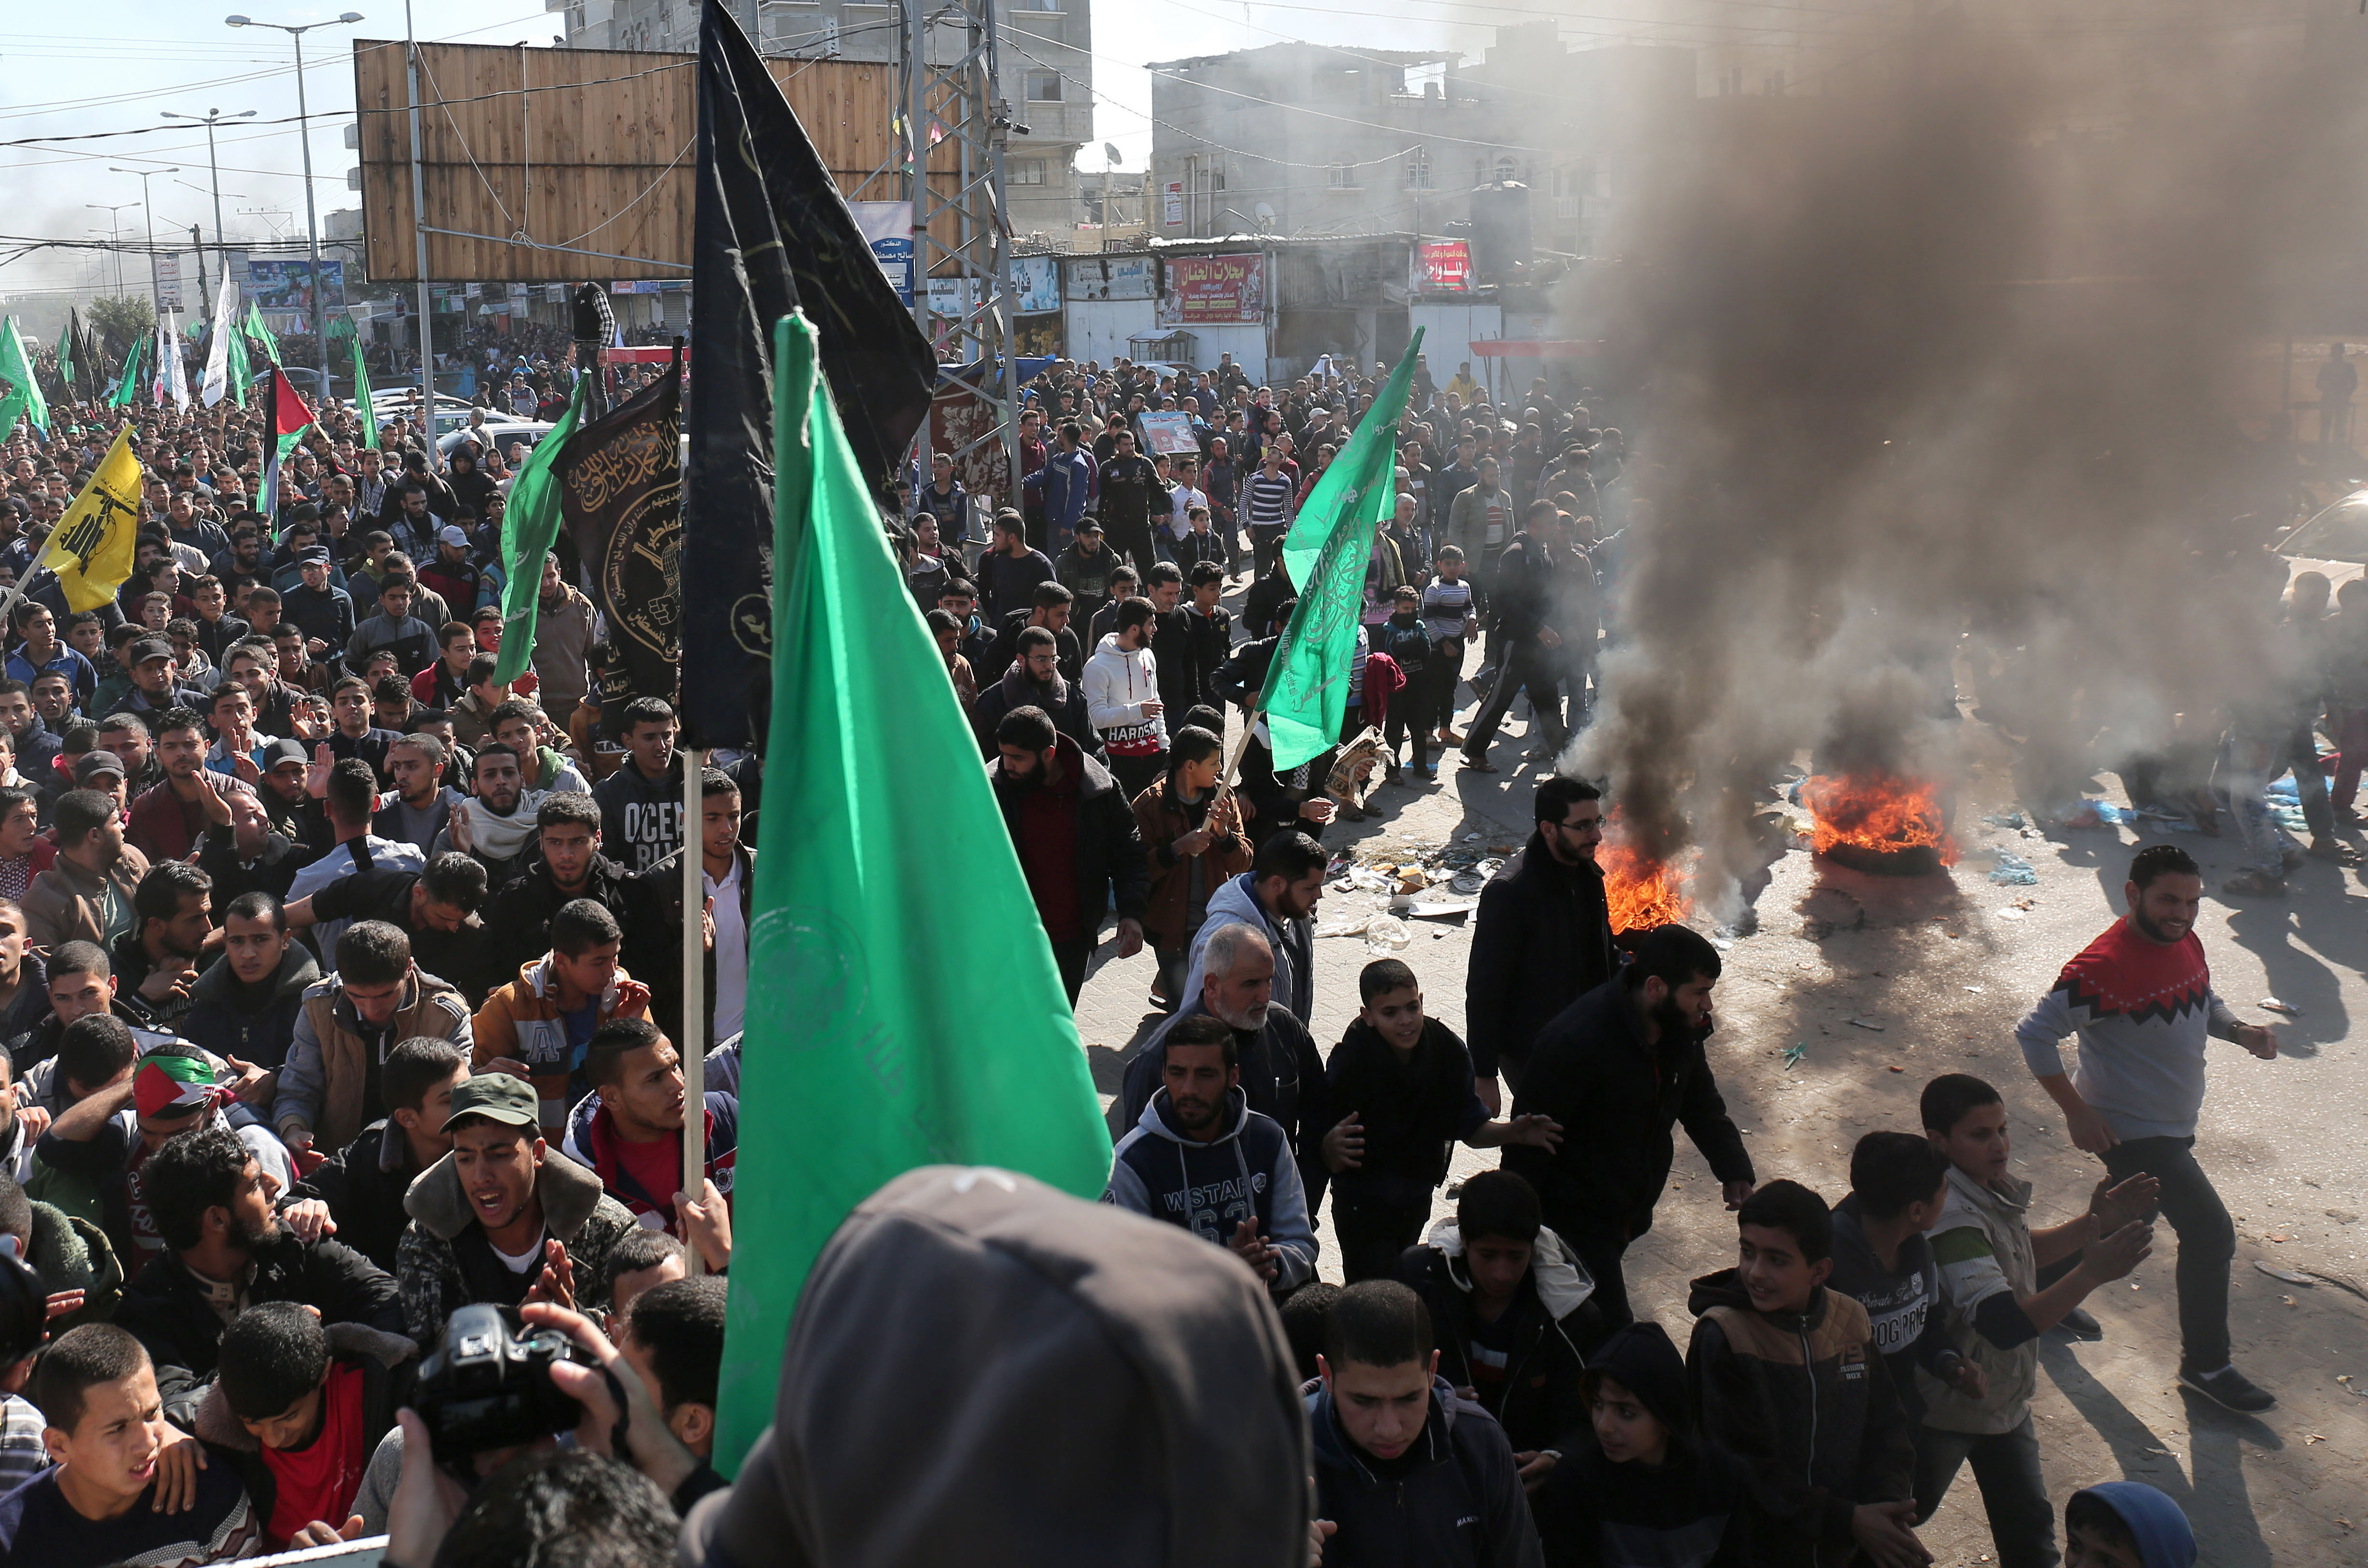 Palestinian protesters burn tyres during a demonstration in the southern Gaza Strip town of Rafah on December 8, 2017 against US President Donald Trump's latest decision to recognise Jerusalem as the capital of Israel